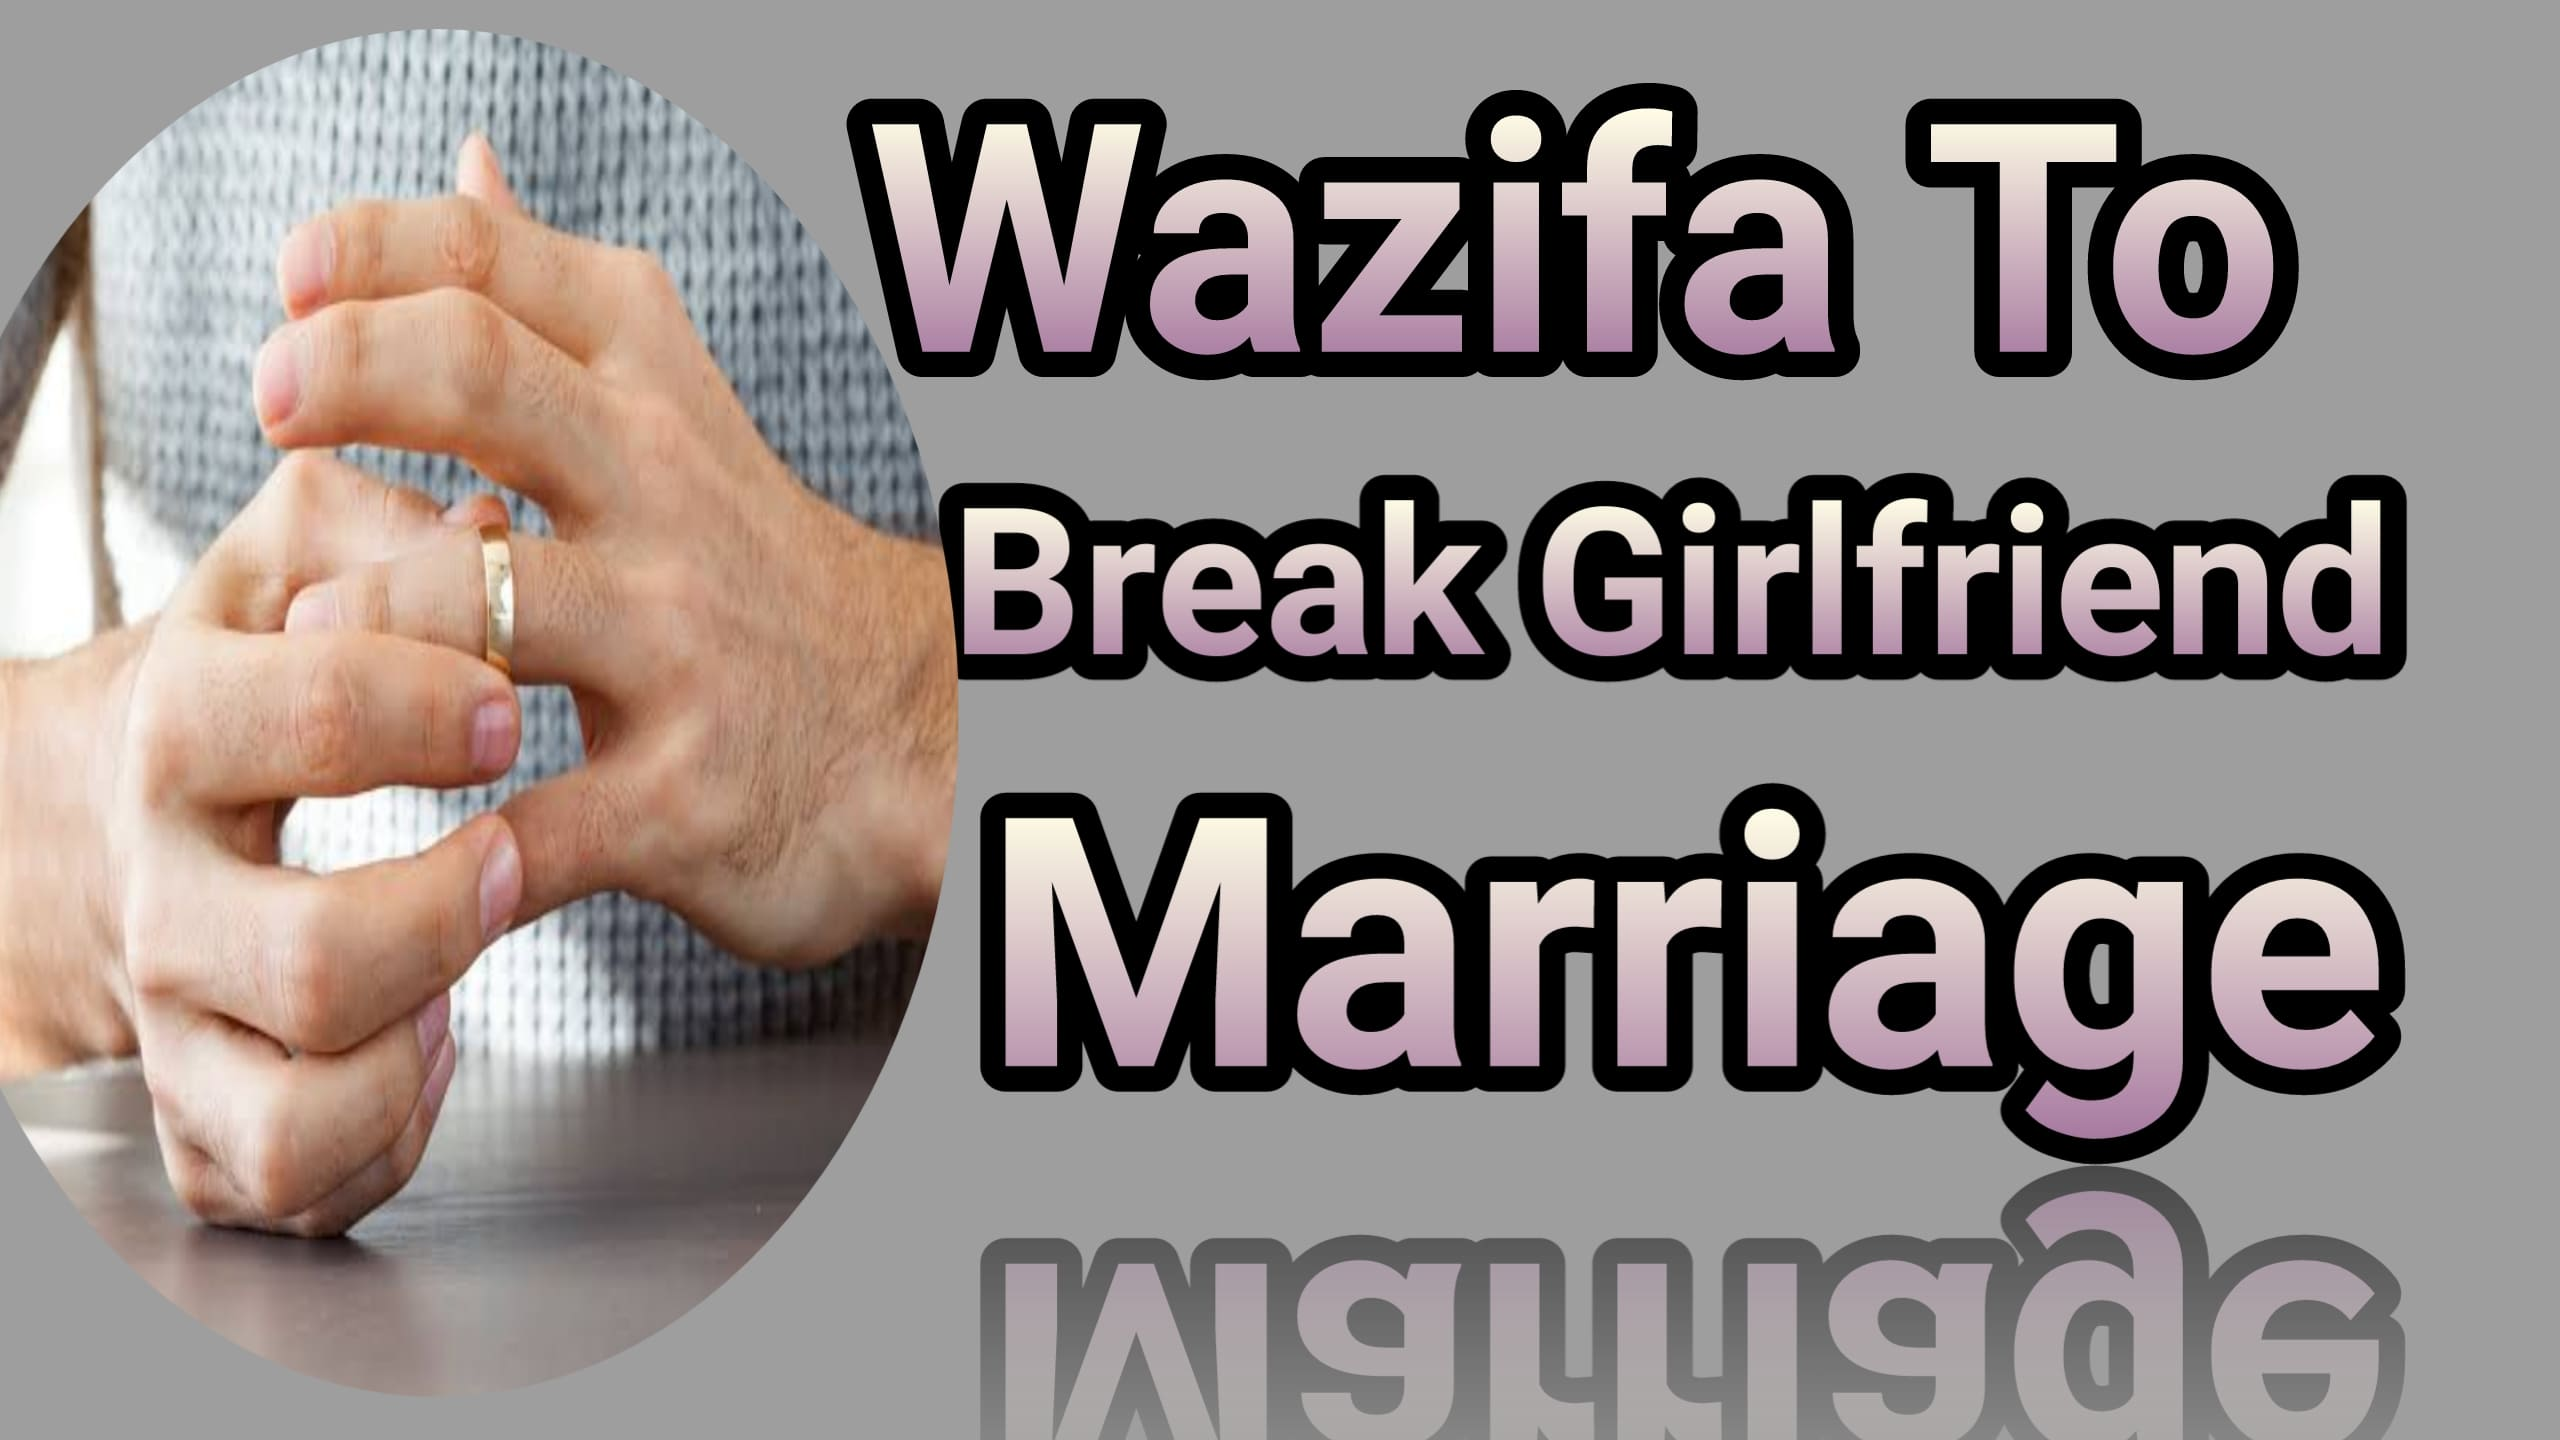 Wazifa to break girlfriend marriage